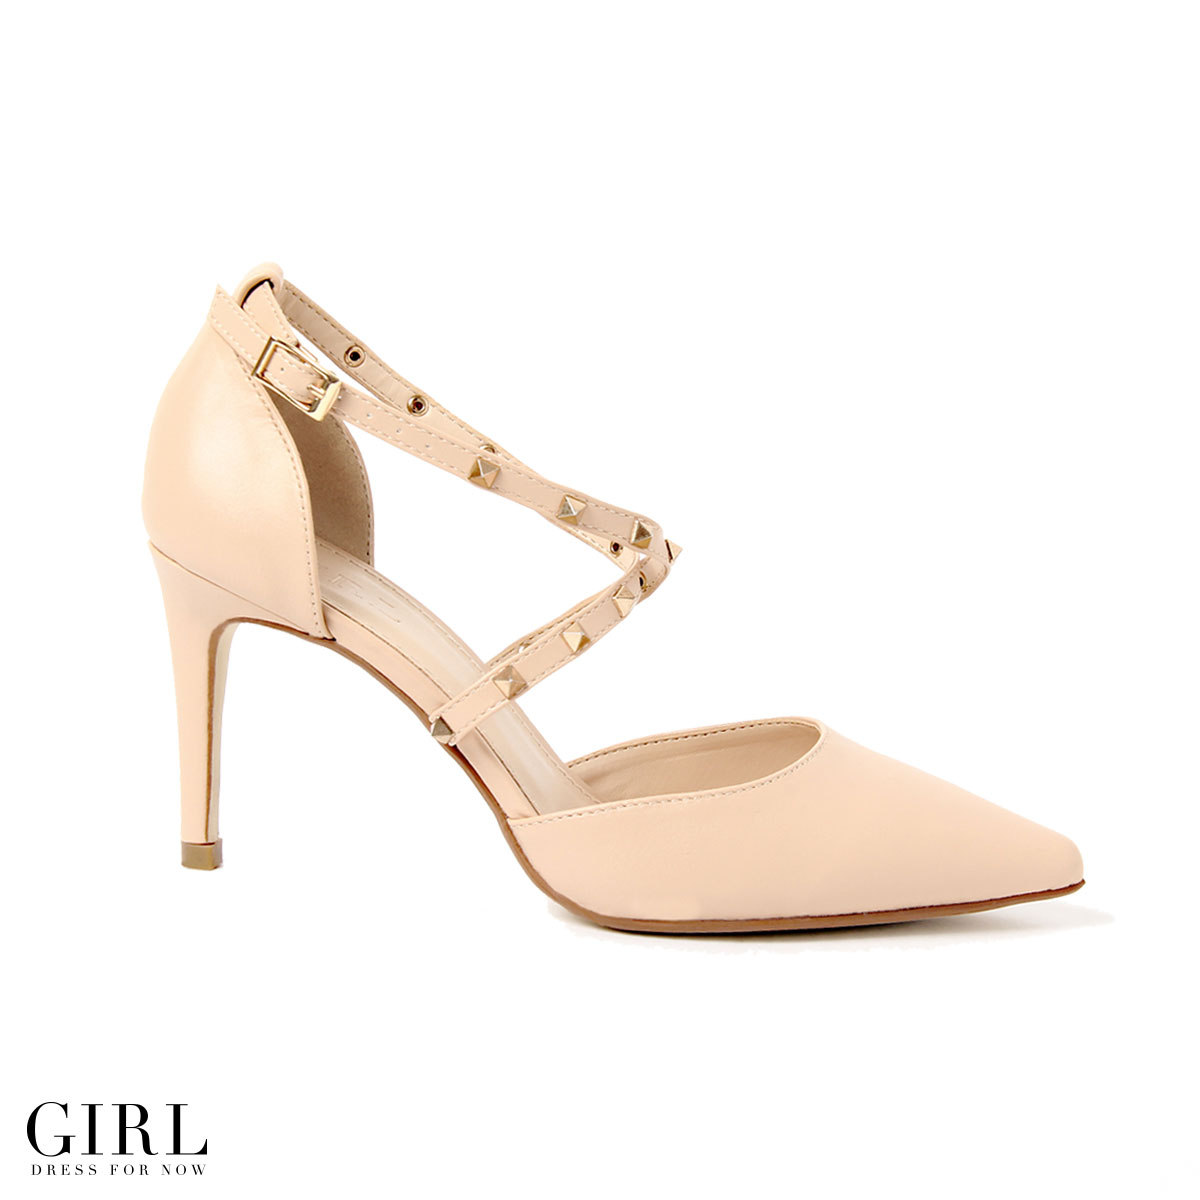 Pumps Shoes Las Large Size Wedding Party Soft Or Easy To Walk